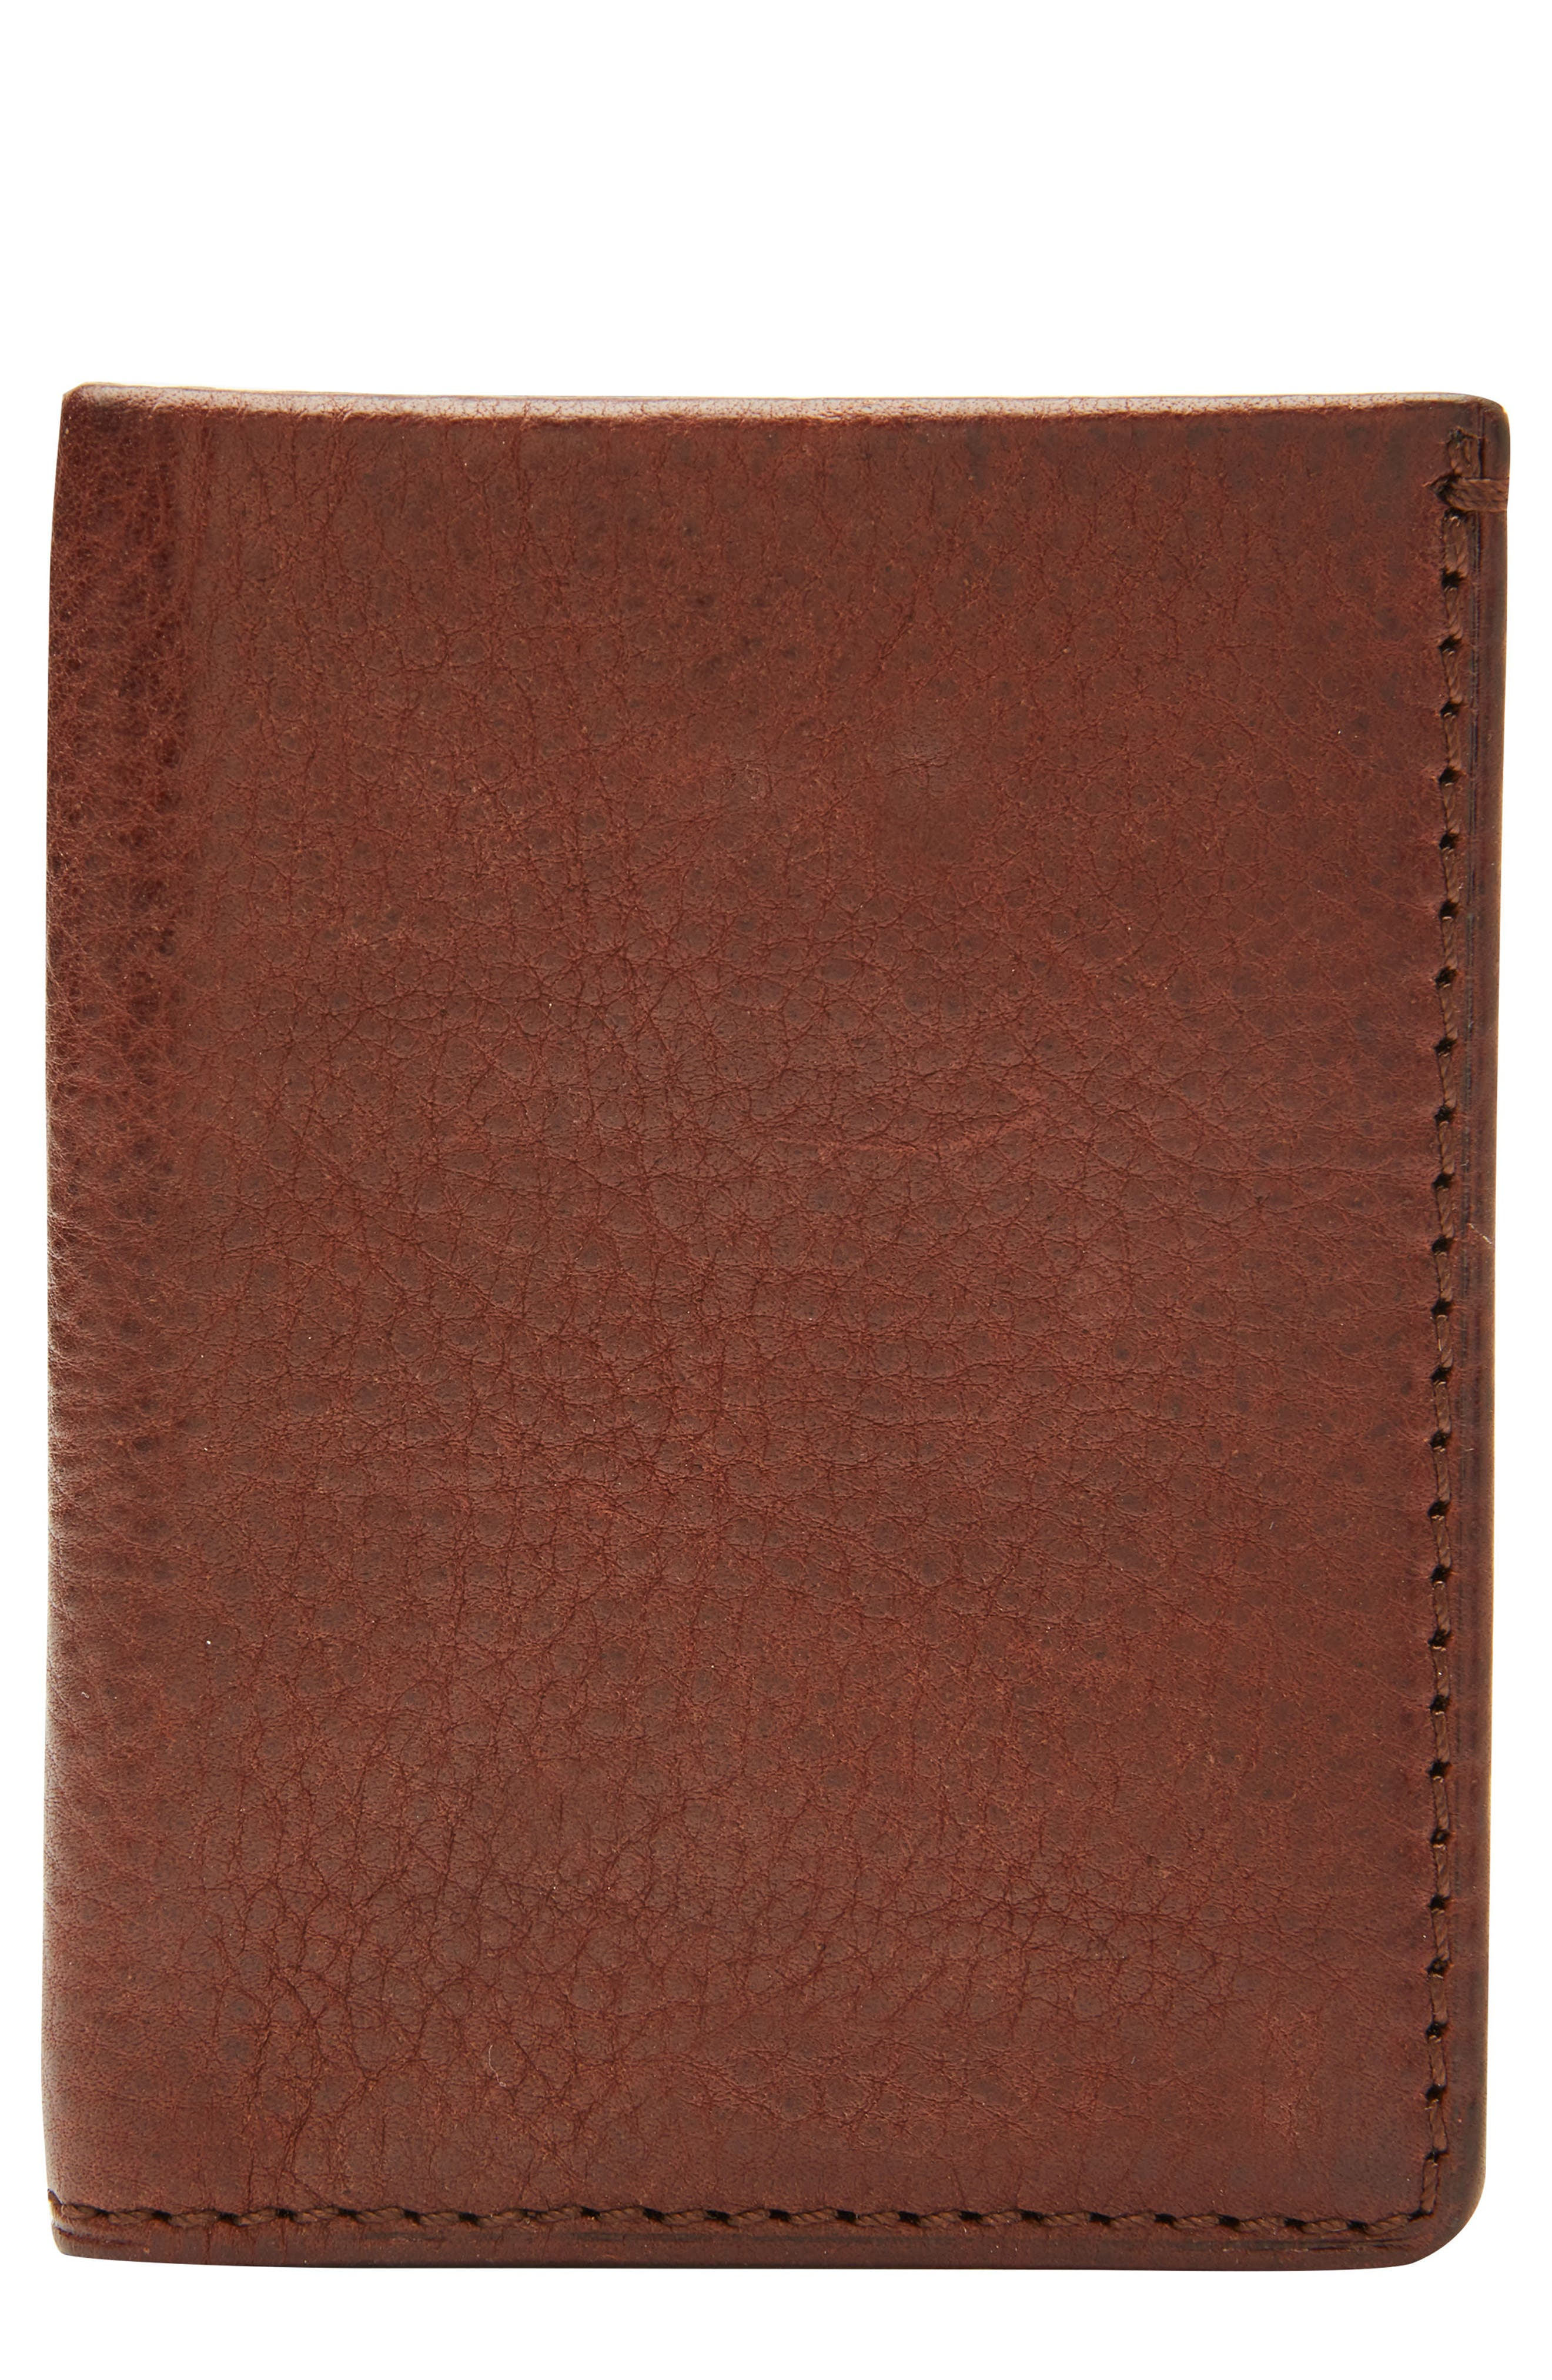 Leather with Selvedge Denim Card Case,                         Main,                         color, 200